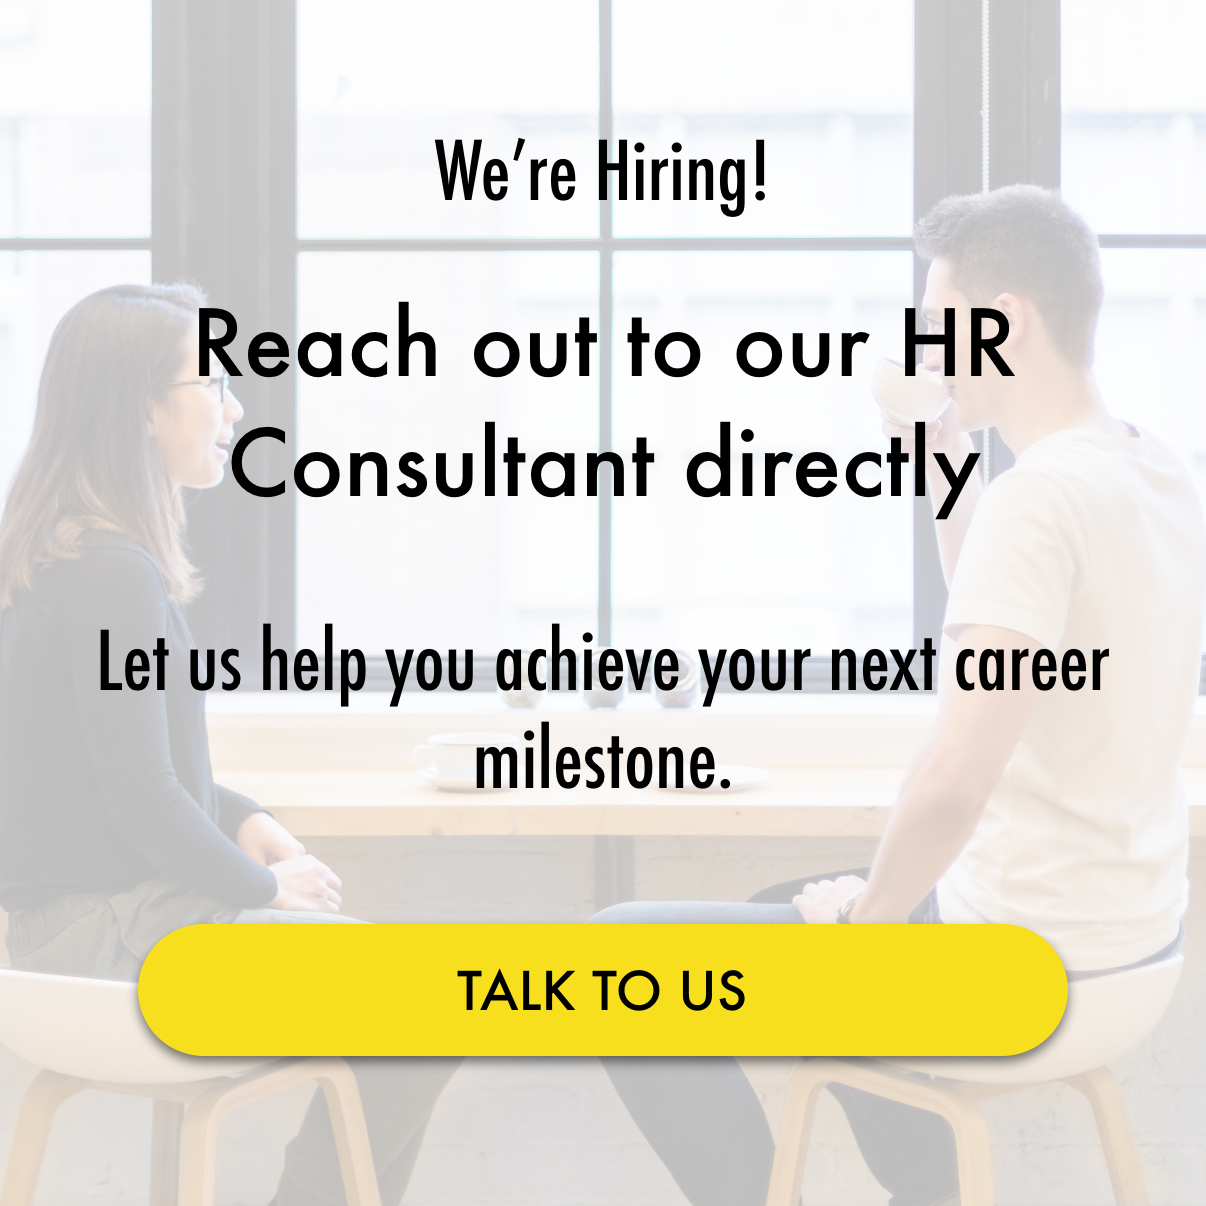 Prodigy Labs is hiring! Talk to our HR consultant. Let us help you achieve your next career milestone.